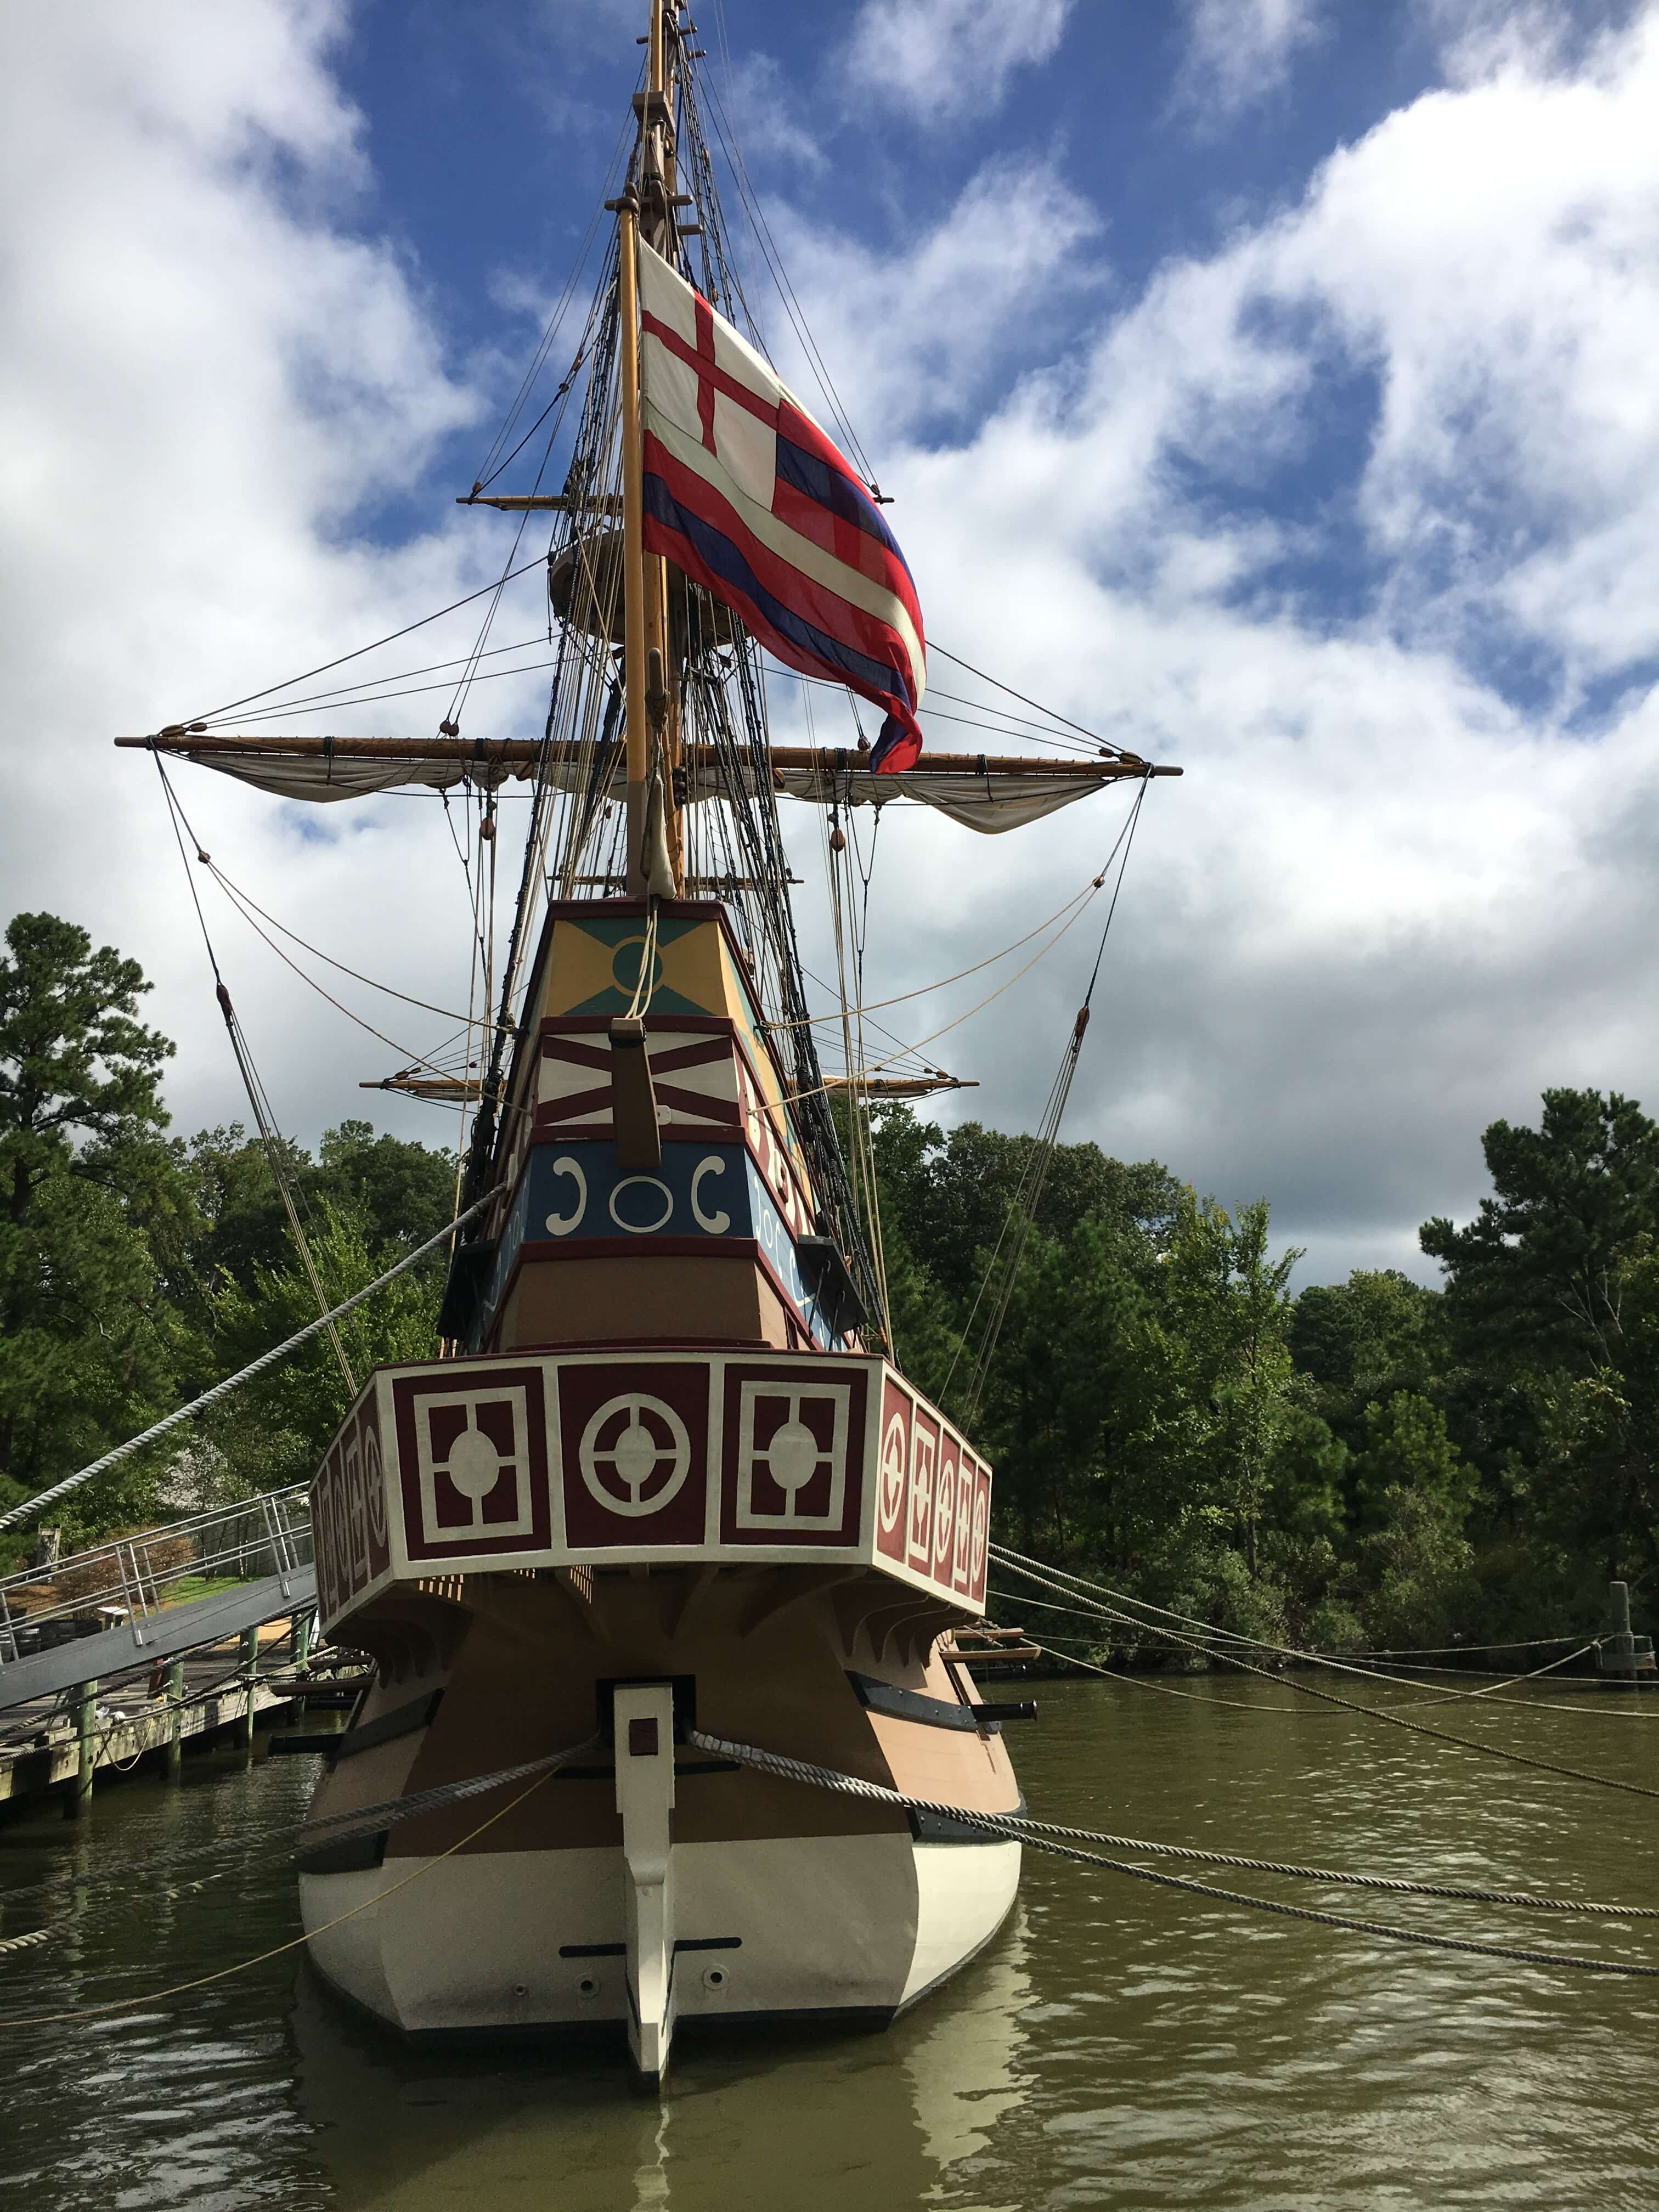 three ships that sailed from England to Virginia in 1607: jamestown